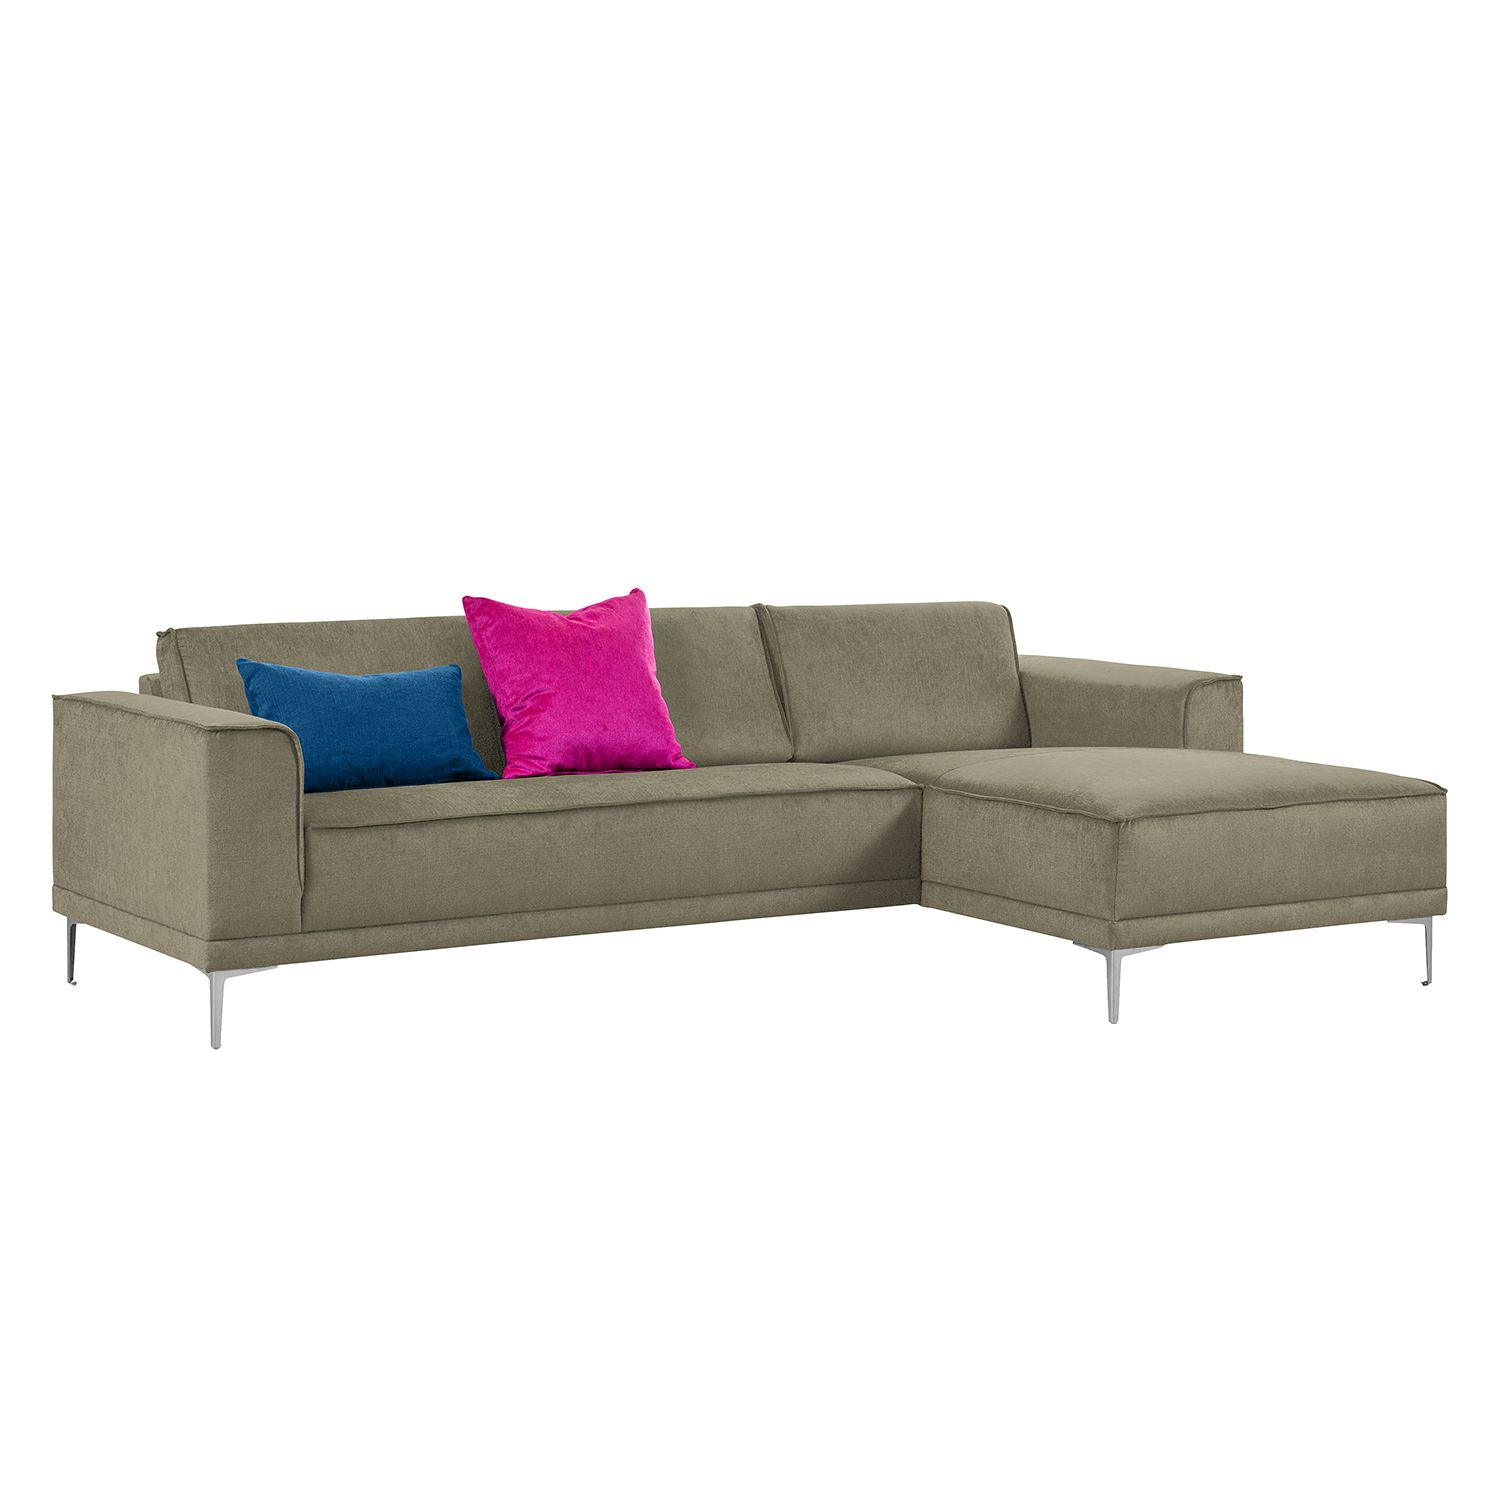 Ecksofa Grapefield - Webstoff - Longchair/Ottomane davorstehend rechts - Taupe, Says Who